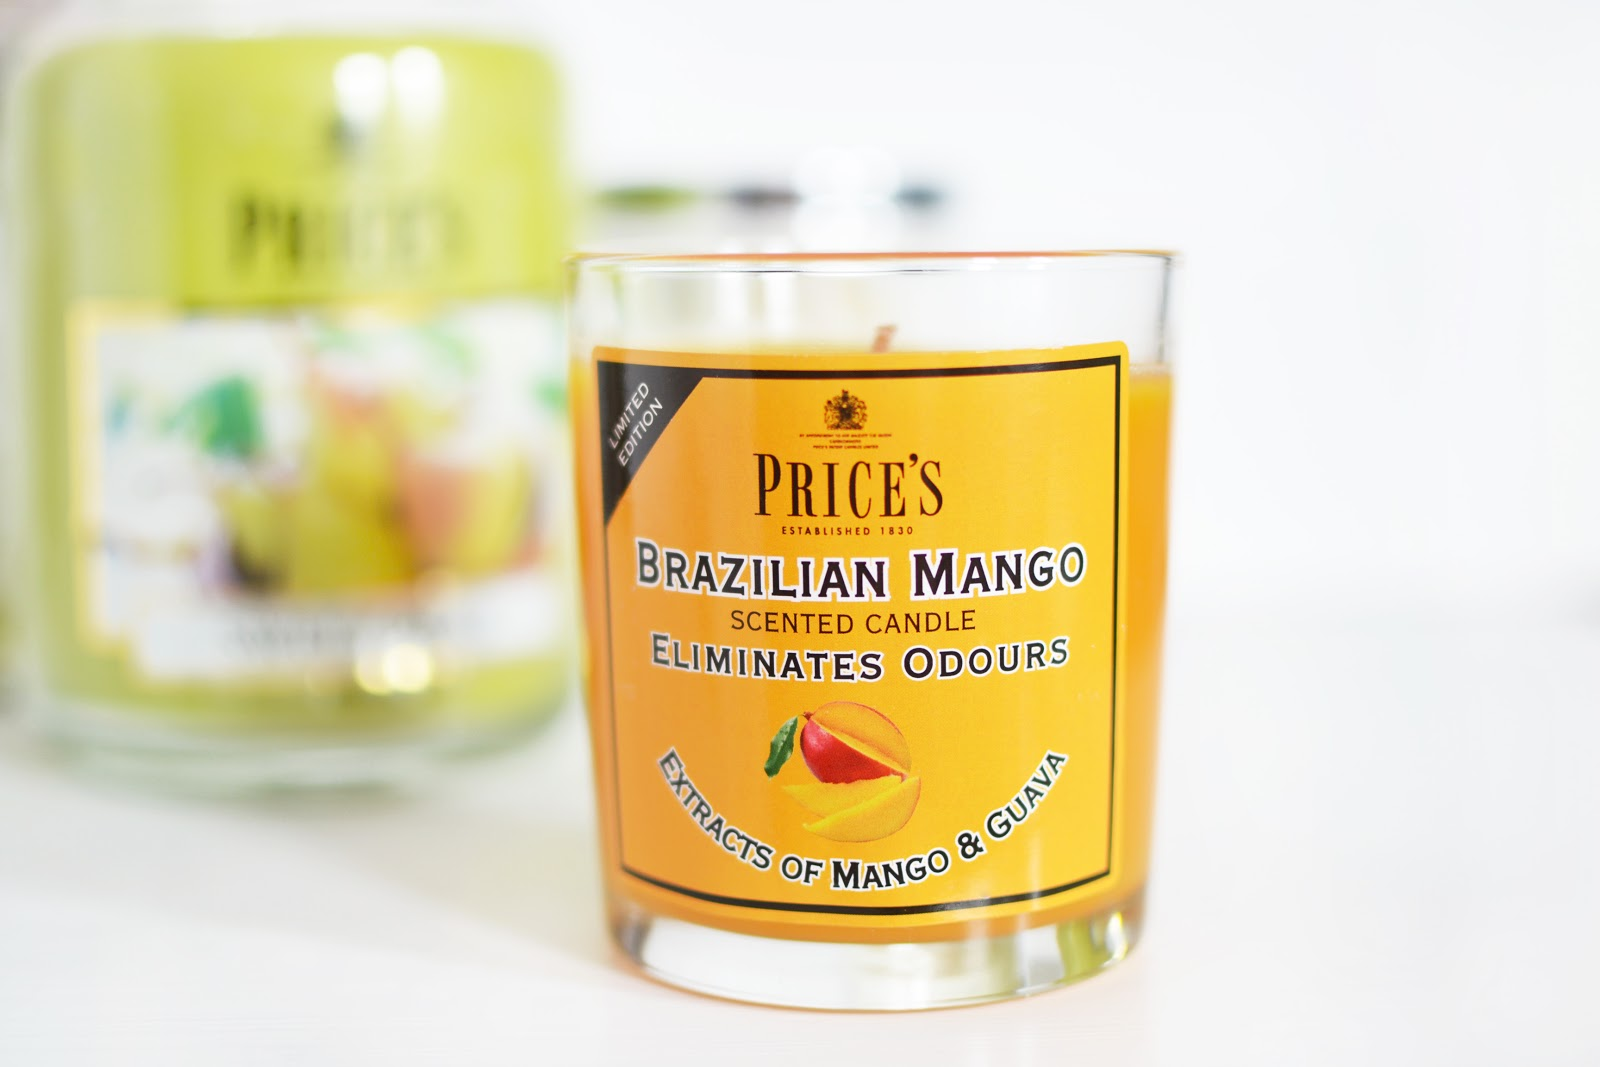 prices candles eliminates odour